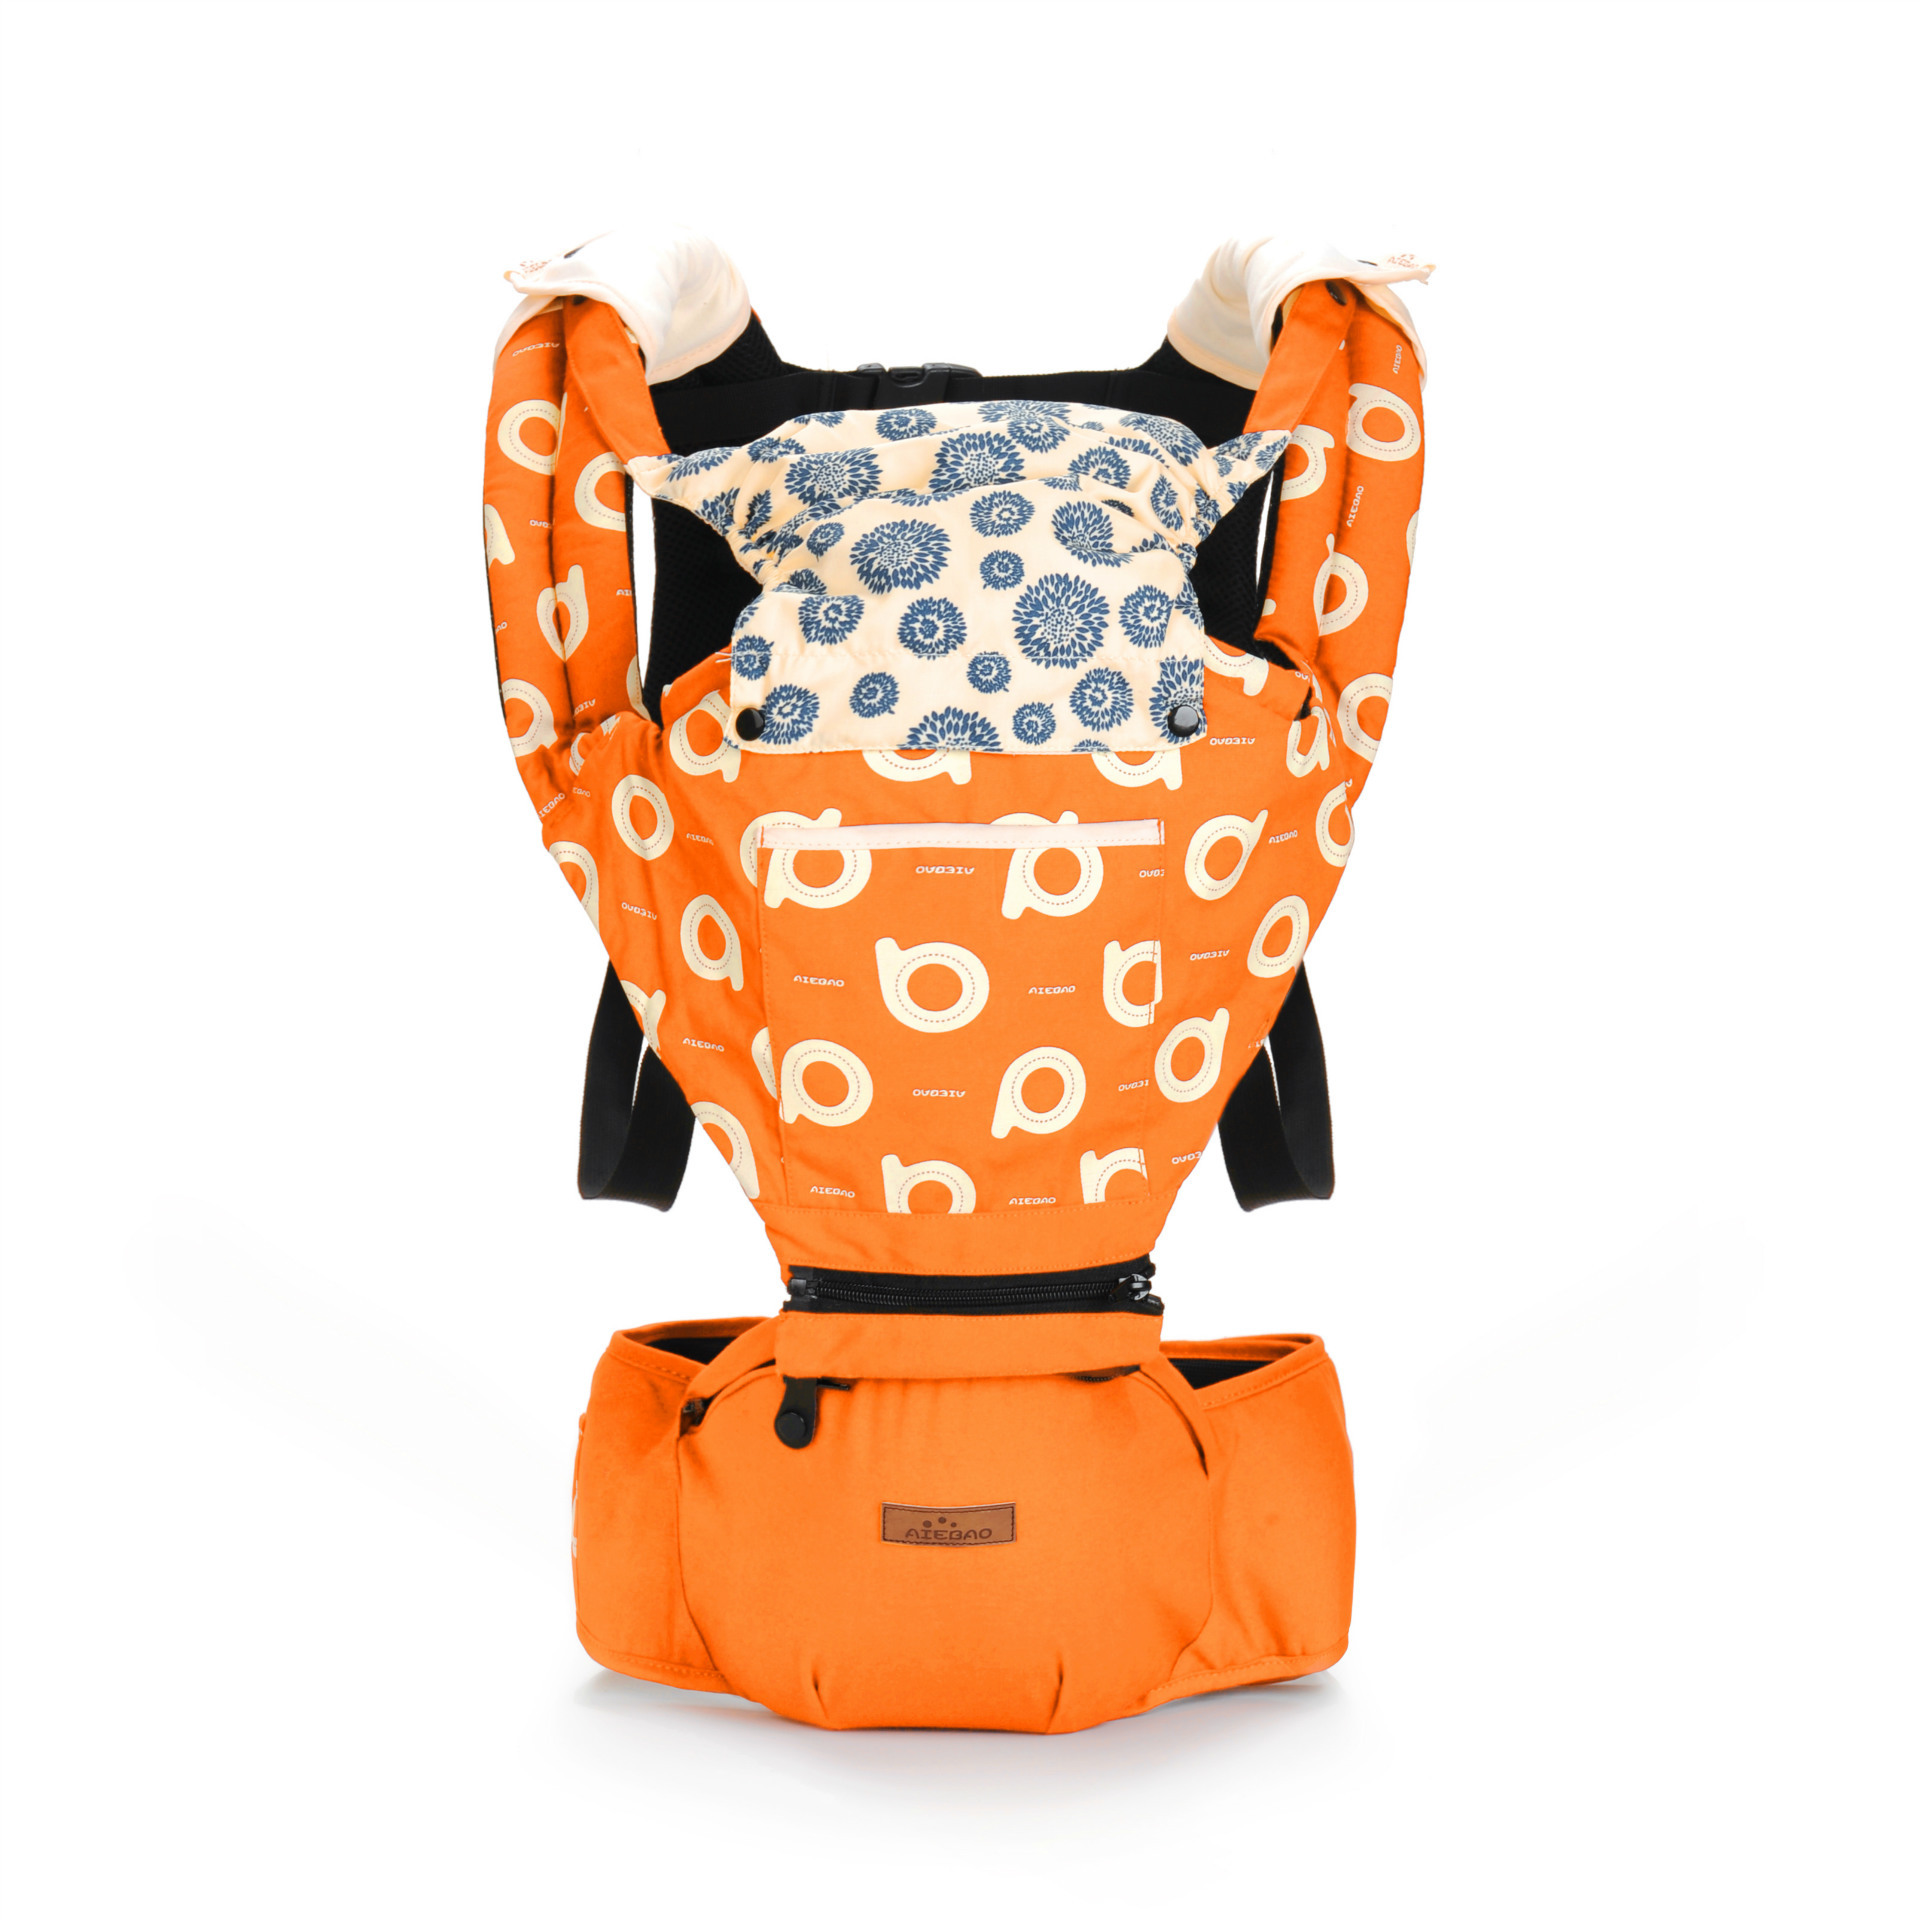 Baby Carrier Backpack Wrap-Sling Hip-Seat Adjustable Infant Kids Cotton With Hood Multifunction